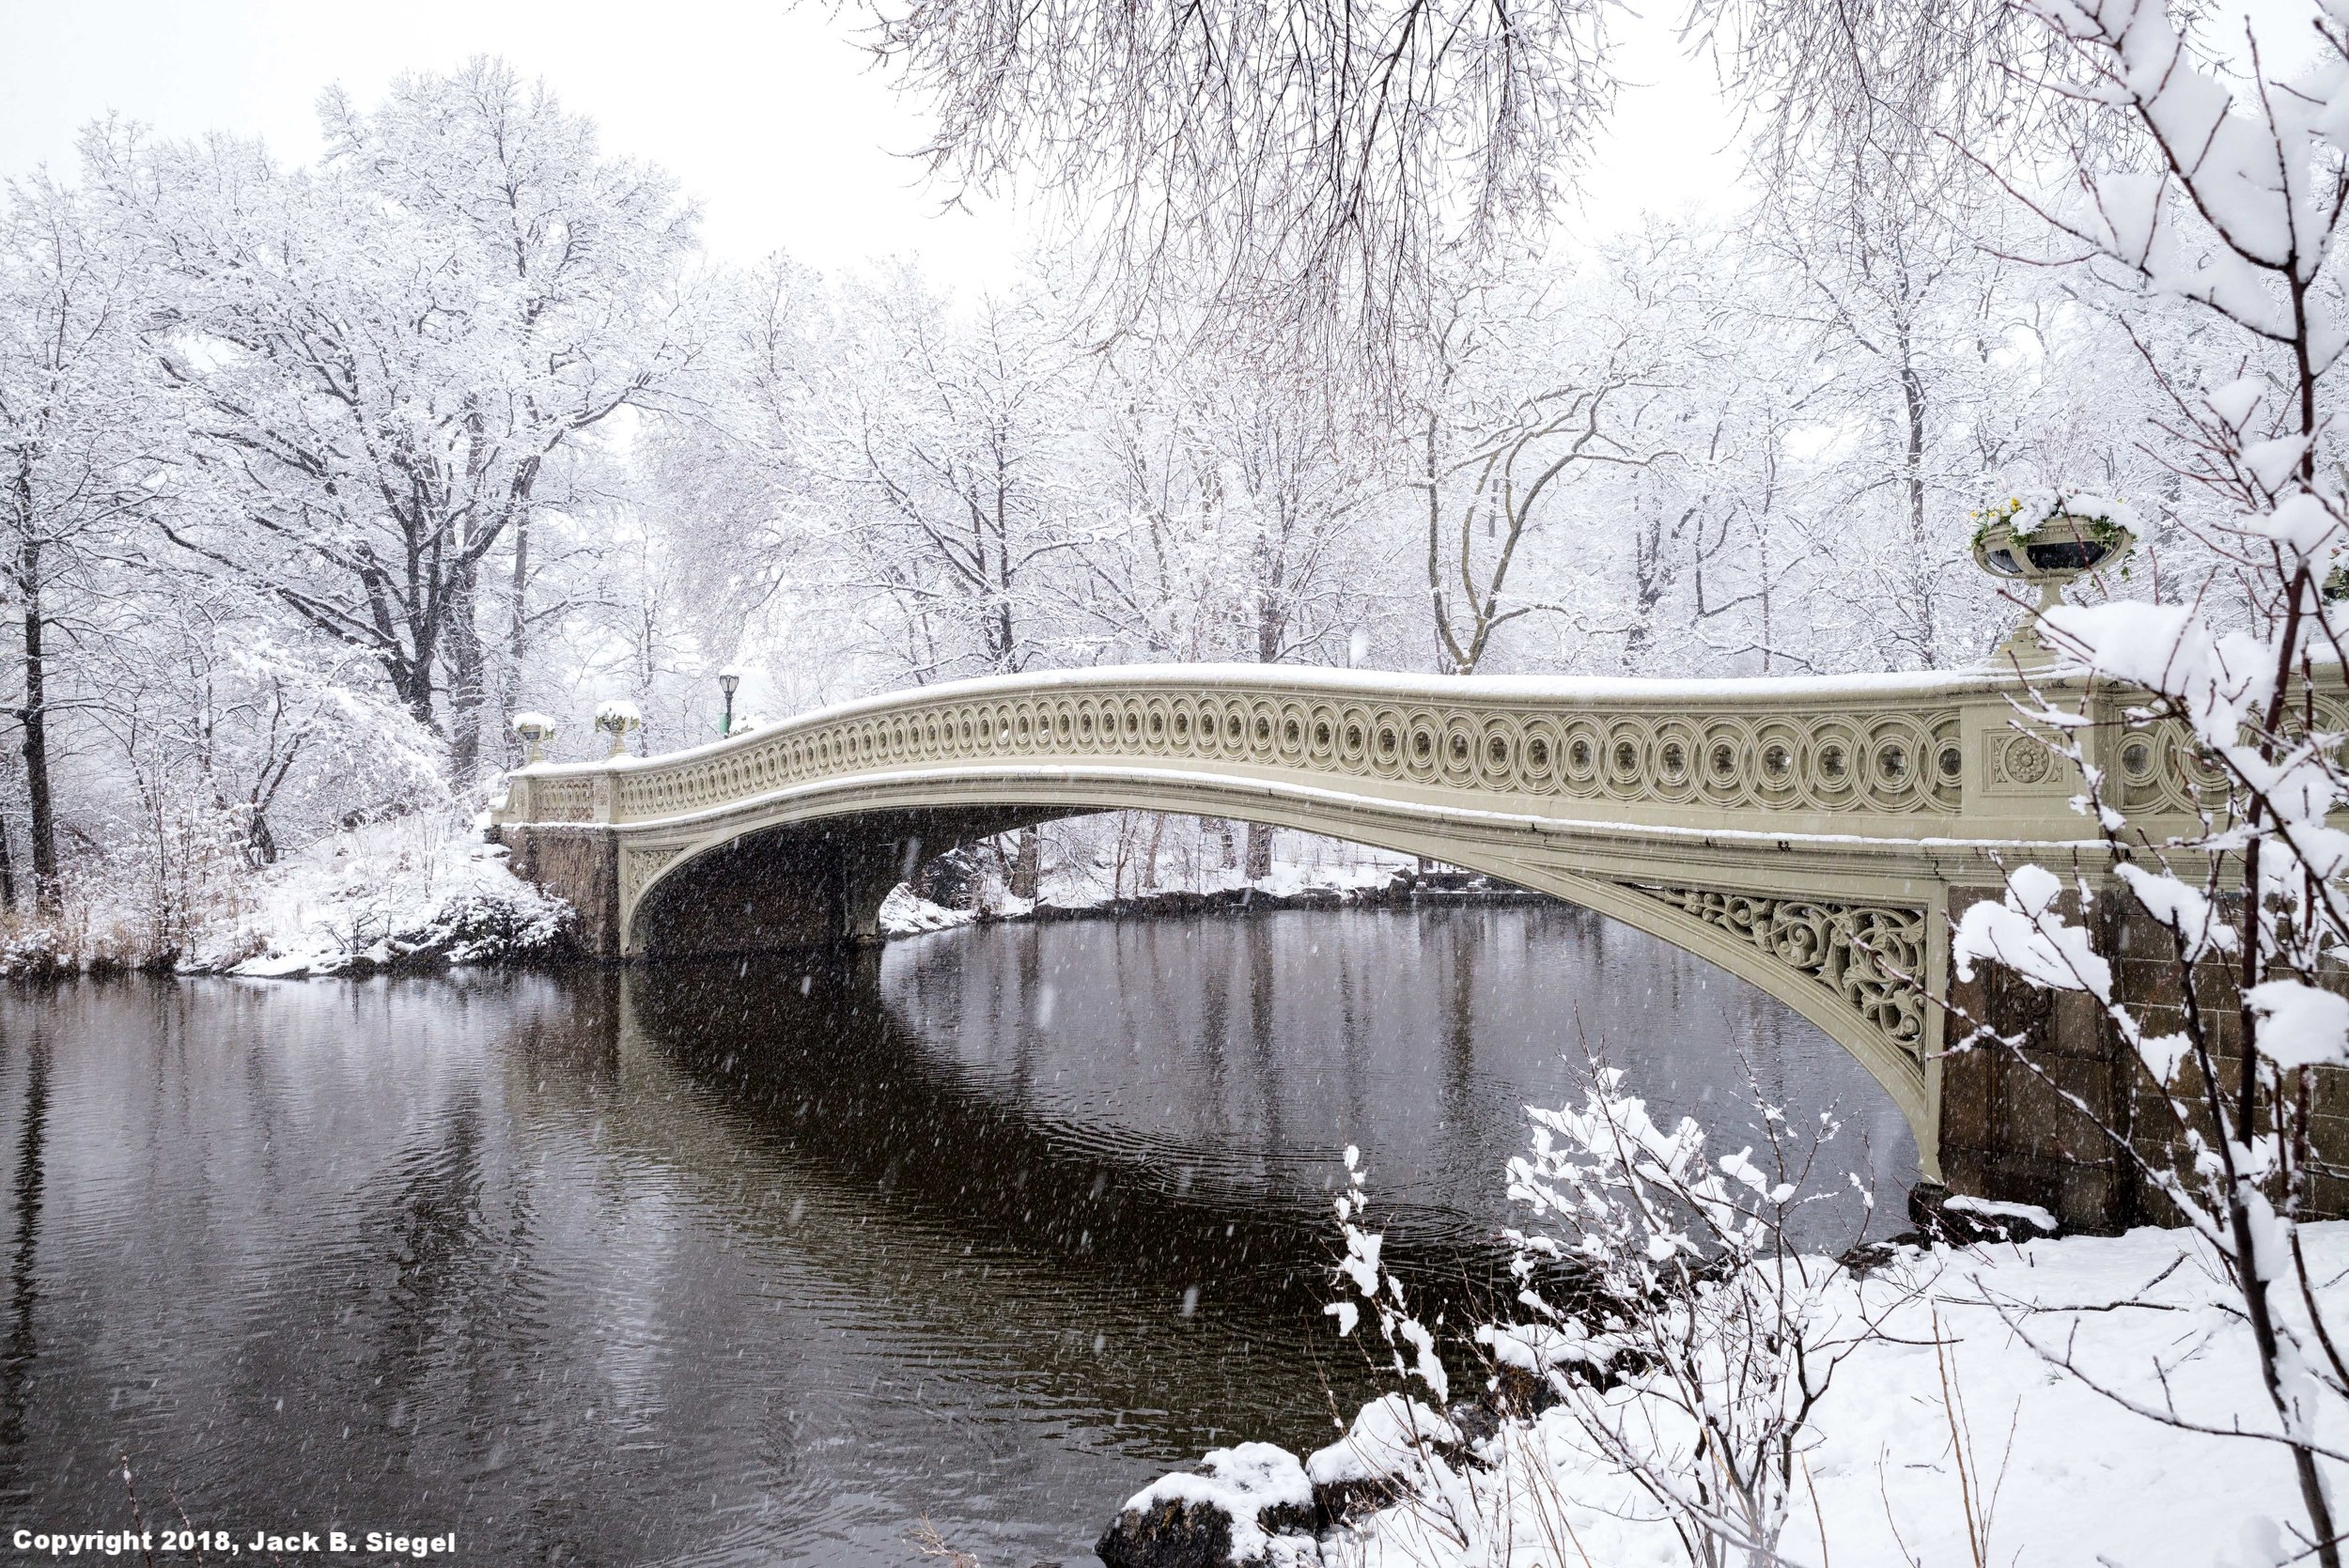 L1001407_Copyright_sRGB_Relative_The Bow Bridge.jpg